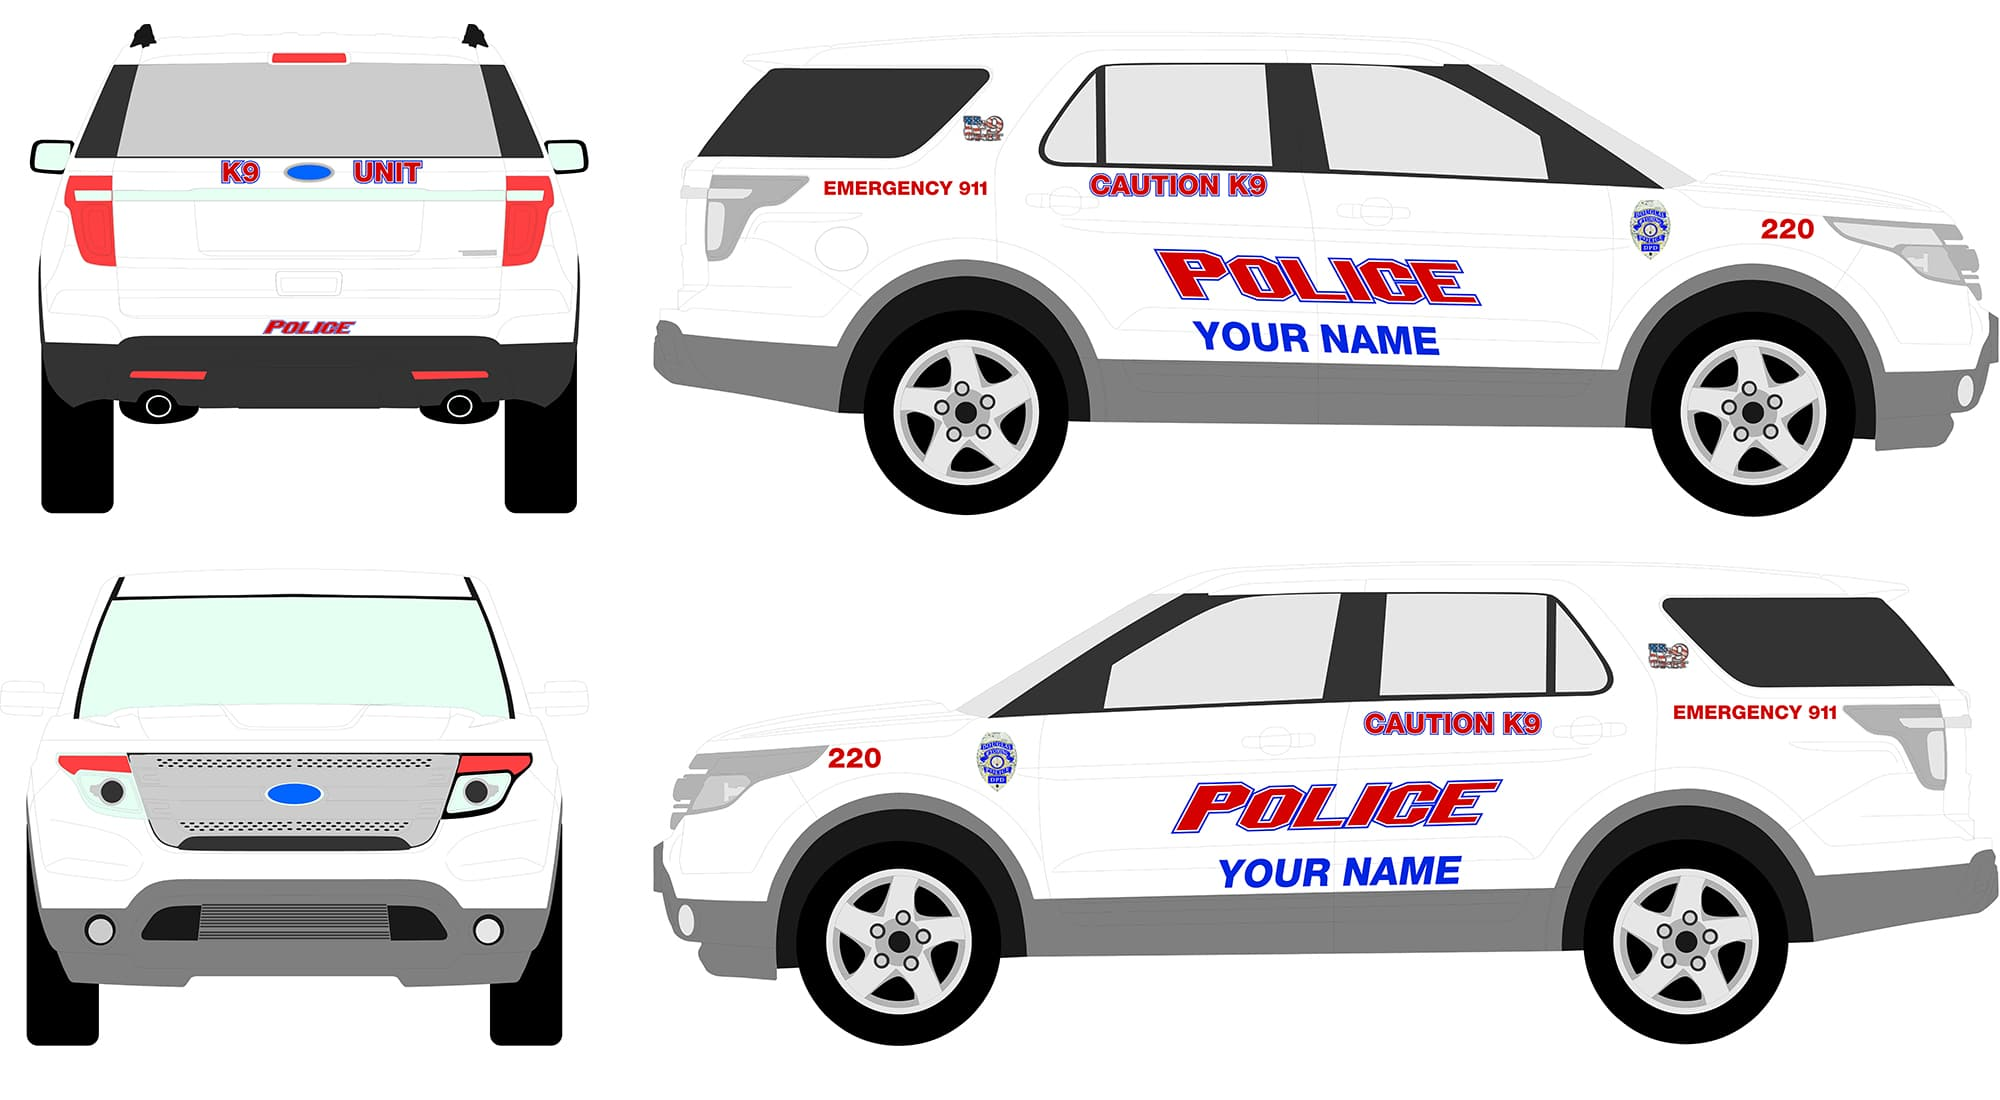 Police Car Graphics Kits Svi Vinyl Police Graphics For